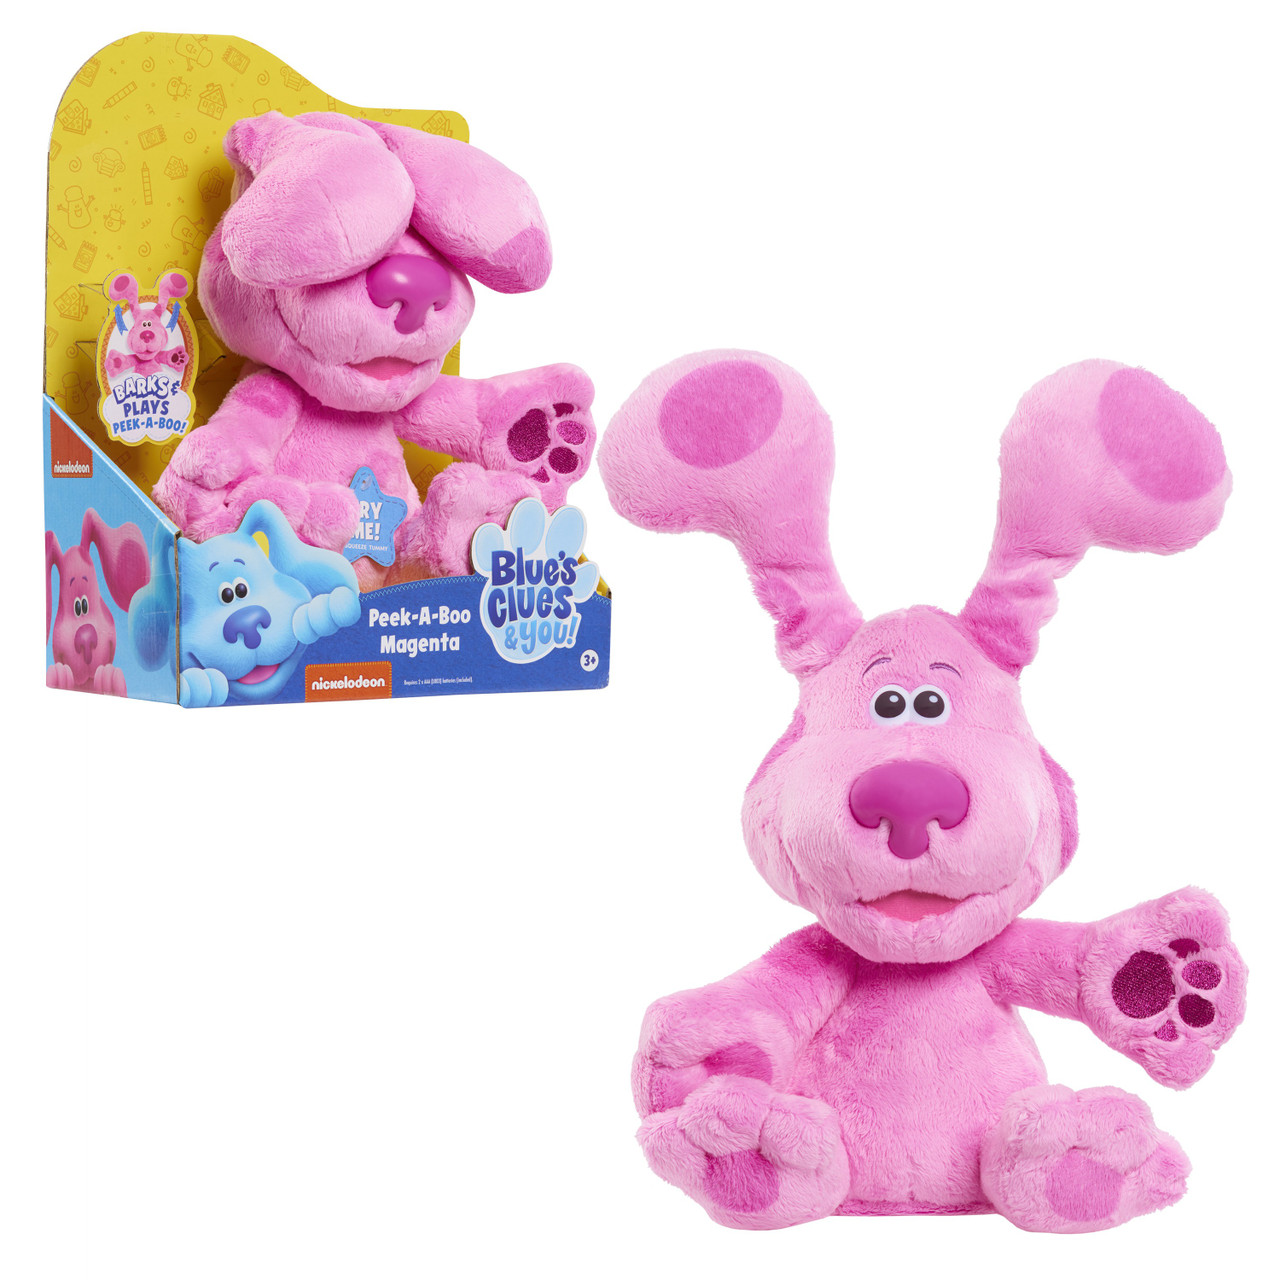 ARRIVES BY CHRISTMAS! Peek-A-Blue10-inch Interactive Puppy Blue's Clues /& You